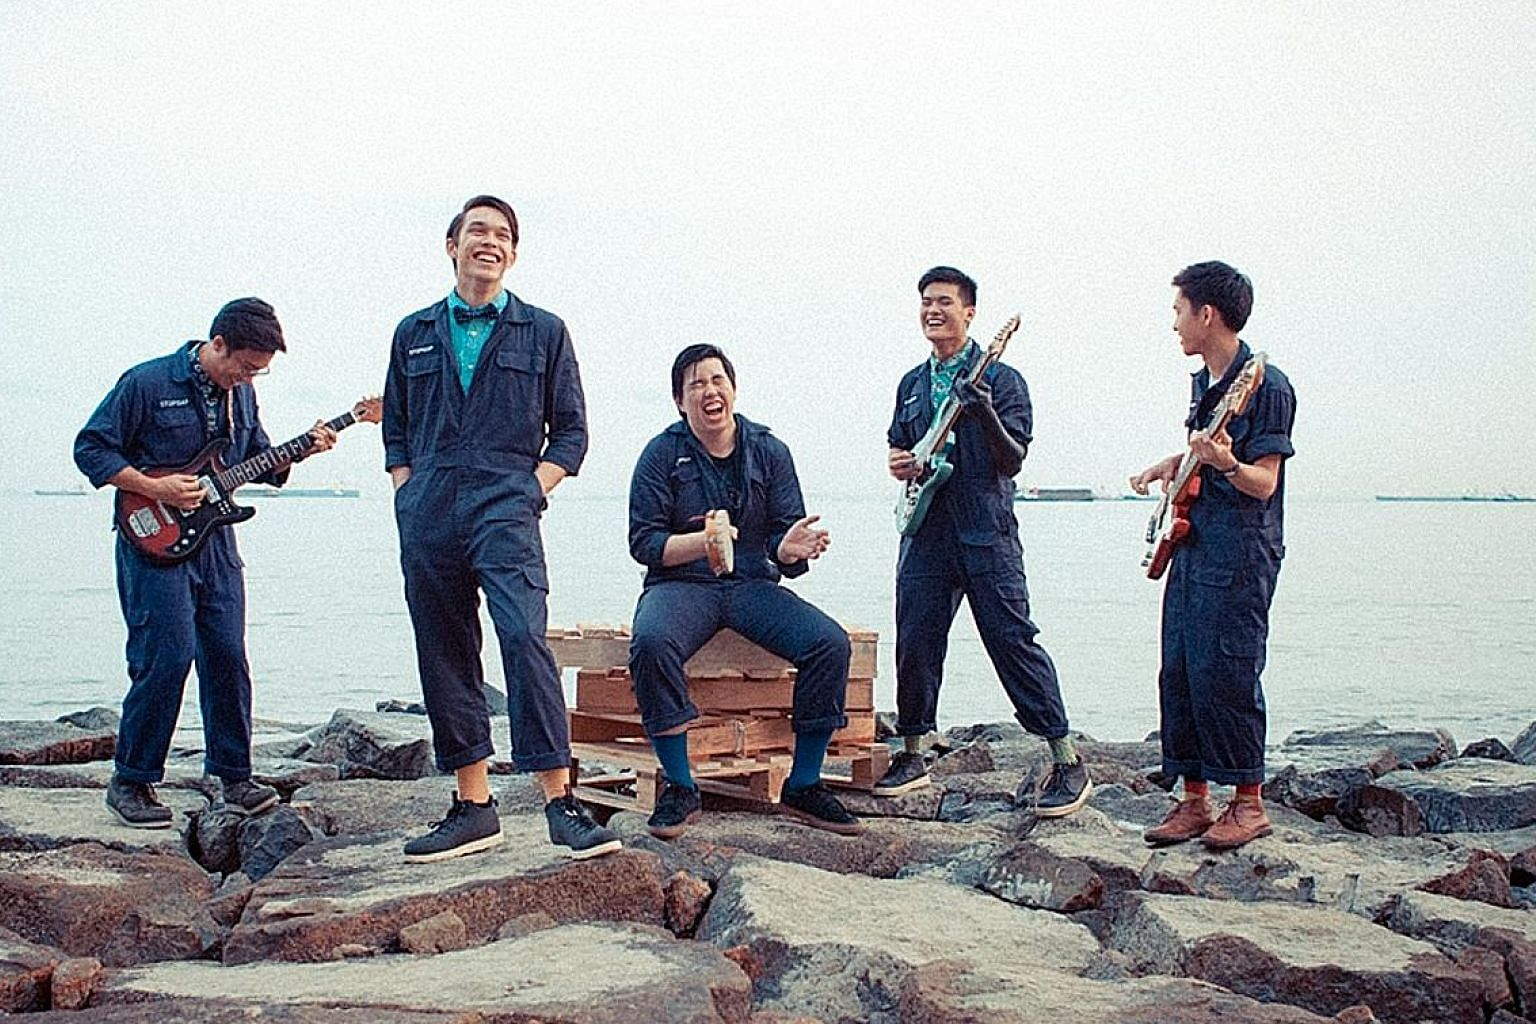 Coffee addicts at this year's festival at the Marina Bay Cruise Centre can look forward to (from left) choux and cappuccino from Ollella Cafe as well as enjoy performances from folk singer Jawn Chan and indie rock band StopGap.